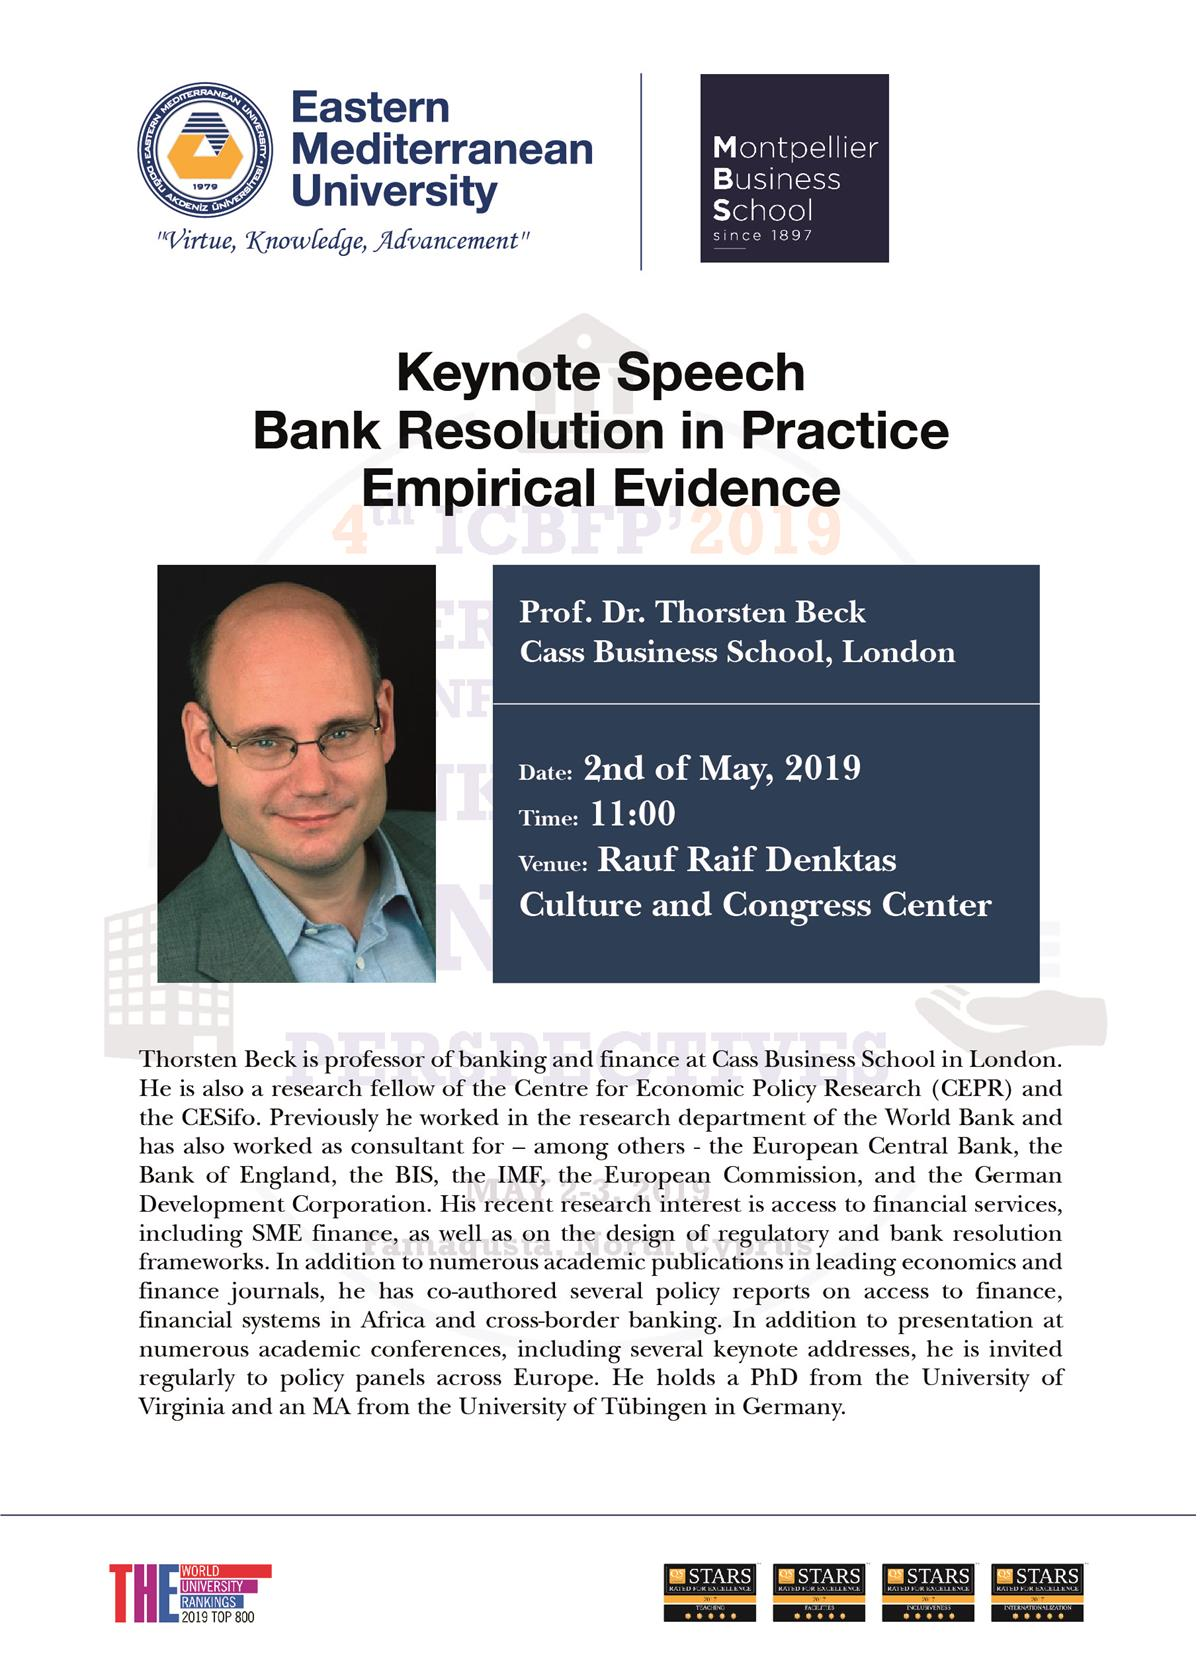 Keynote Speech on Bank Resolution in Practice: Emperical Evidence